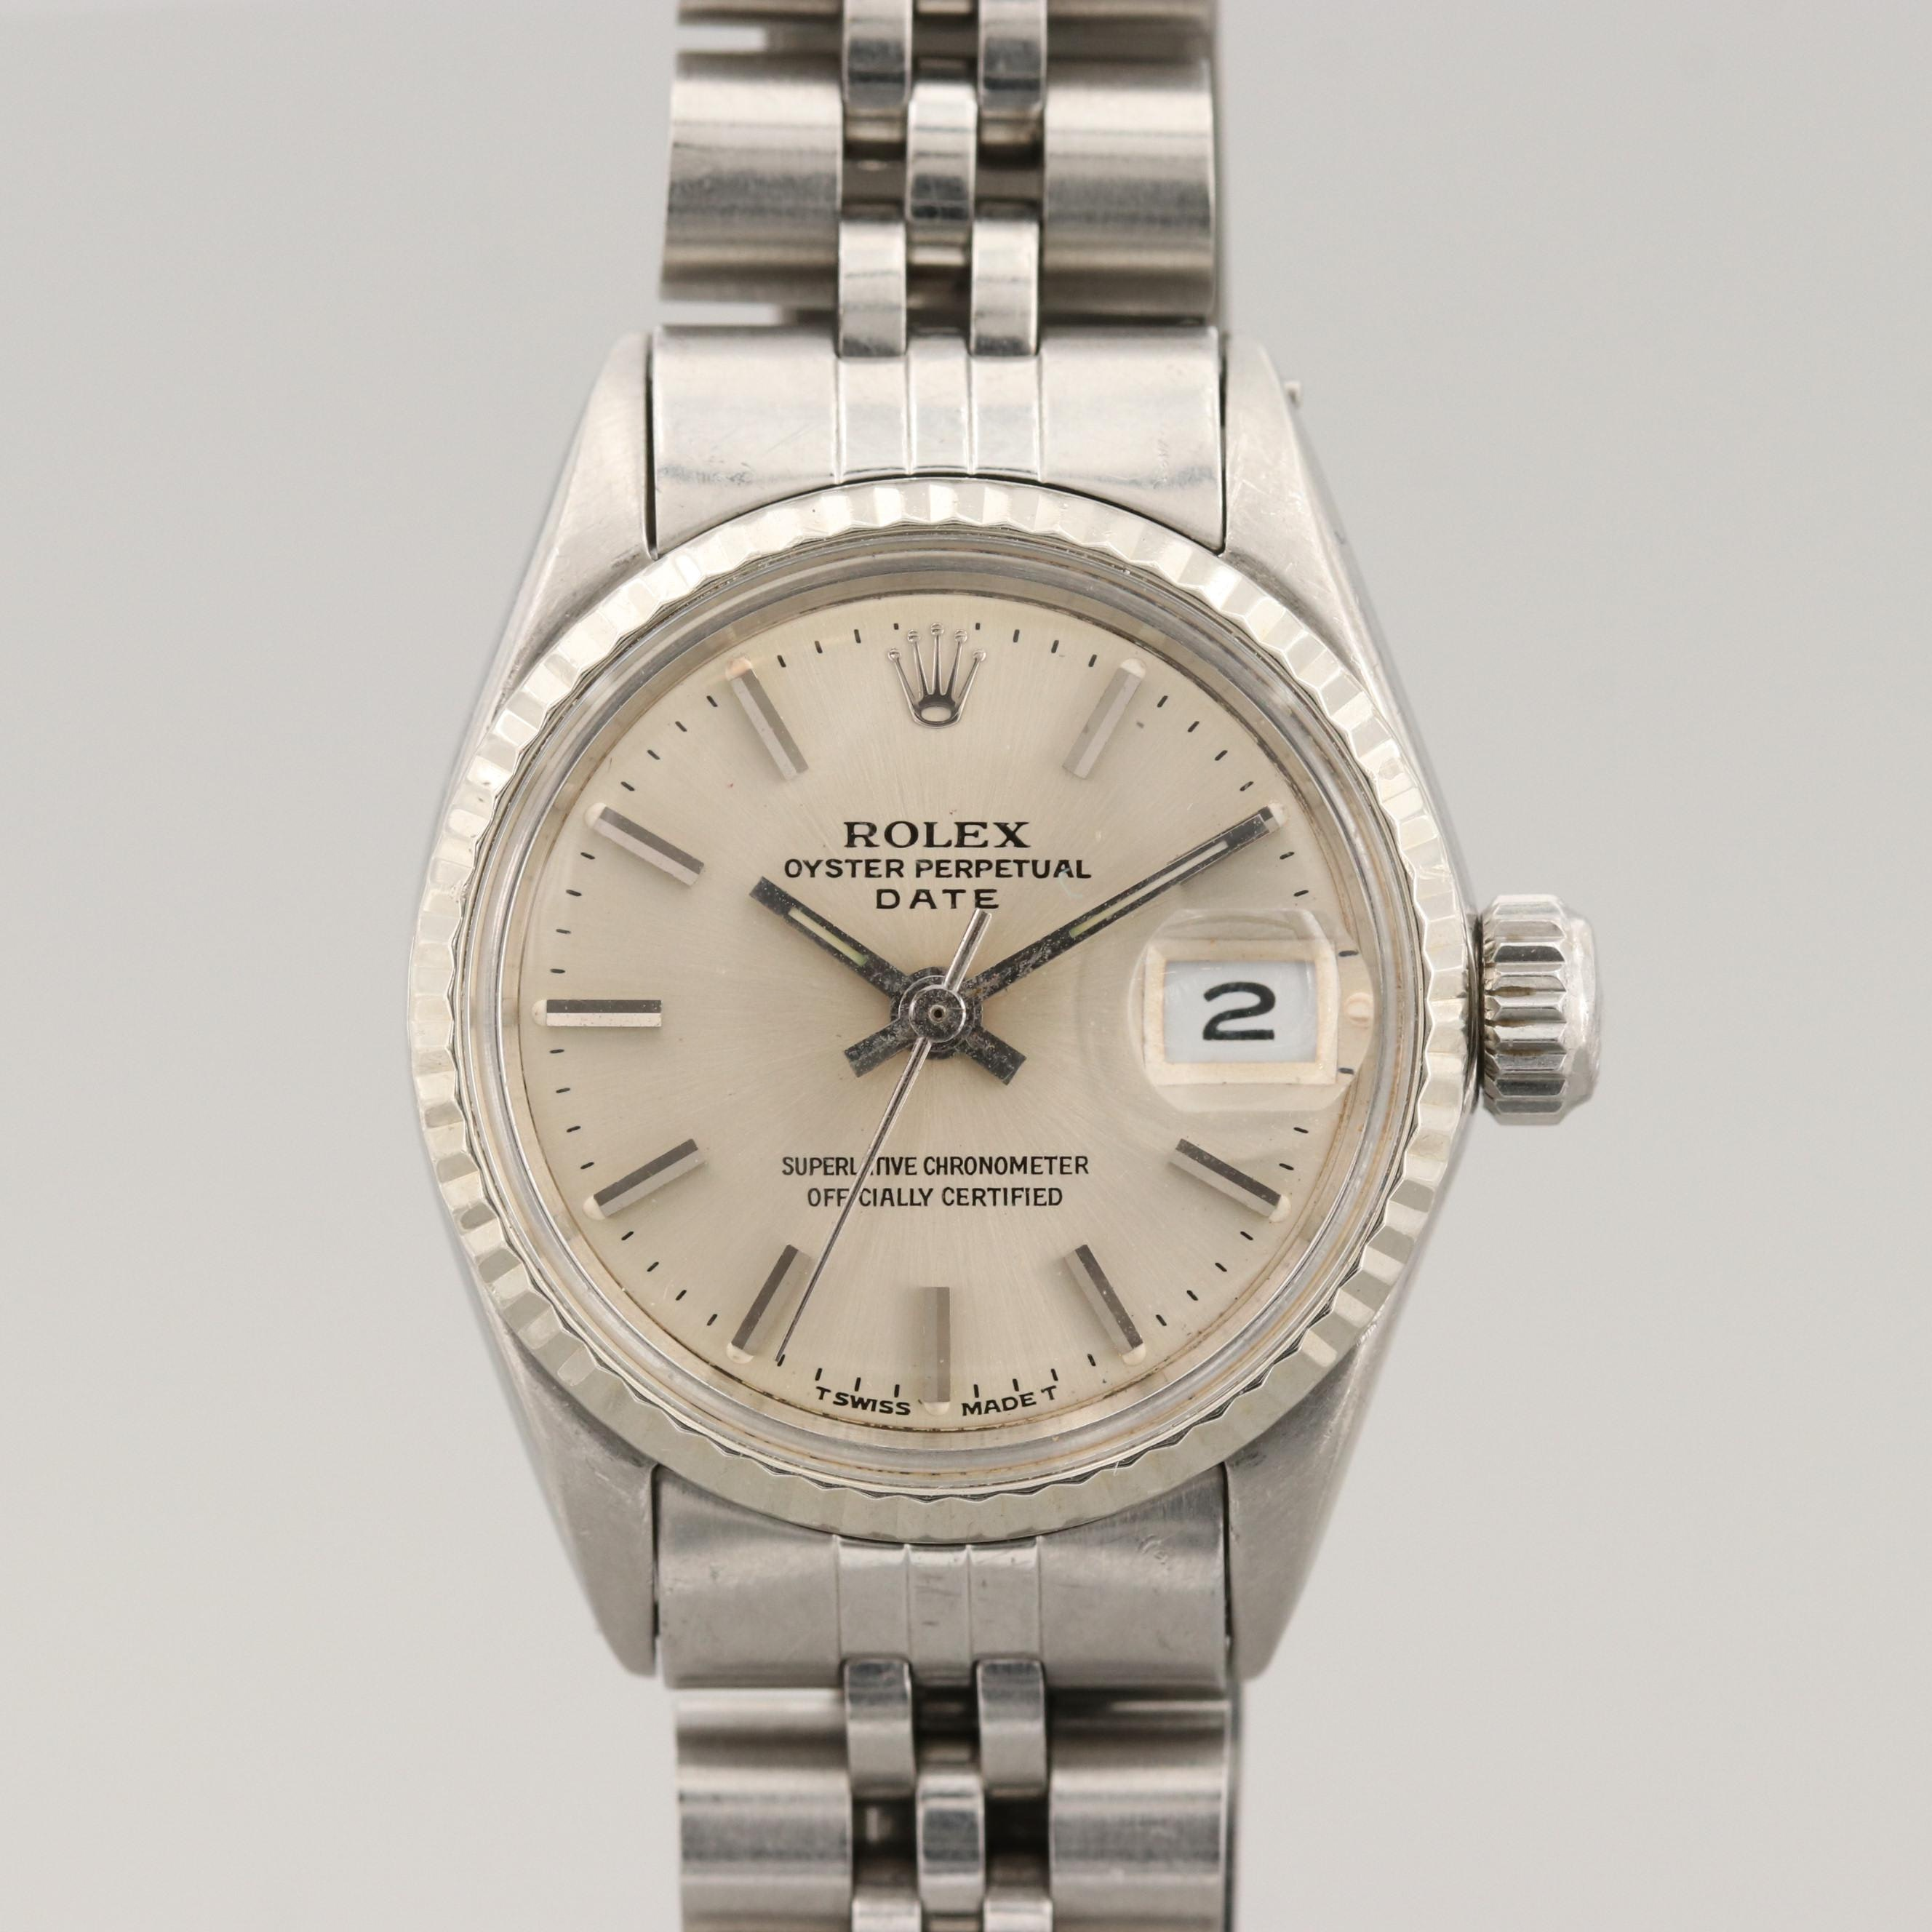 Rolex Oyster Perpetual Date Stainless Steel and 18K White Gold Wristwatch, 1967